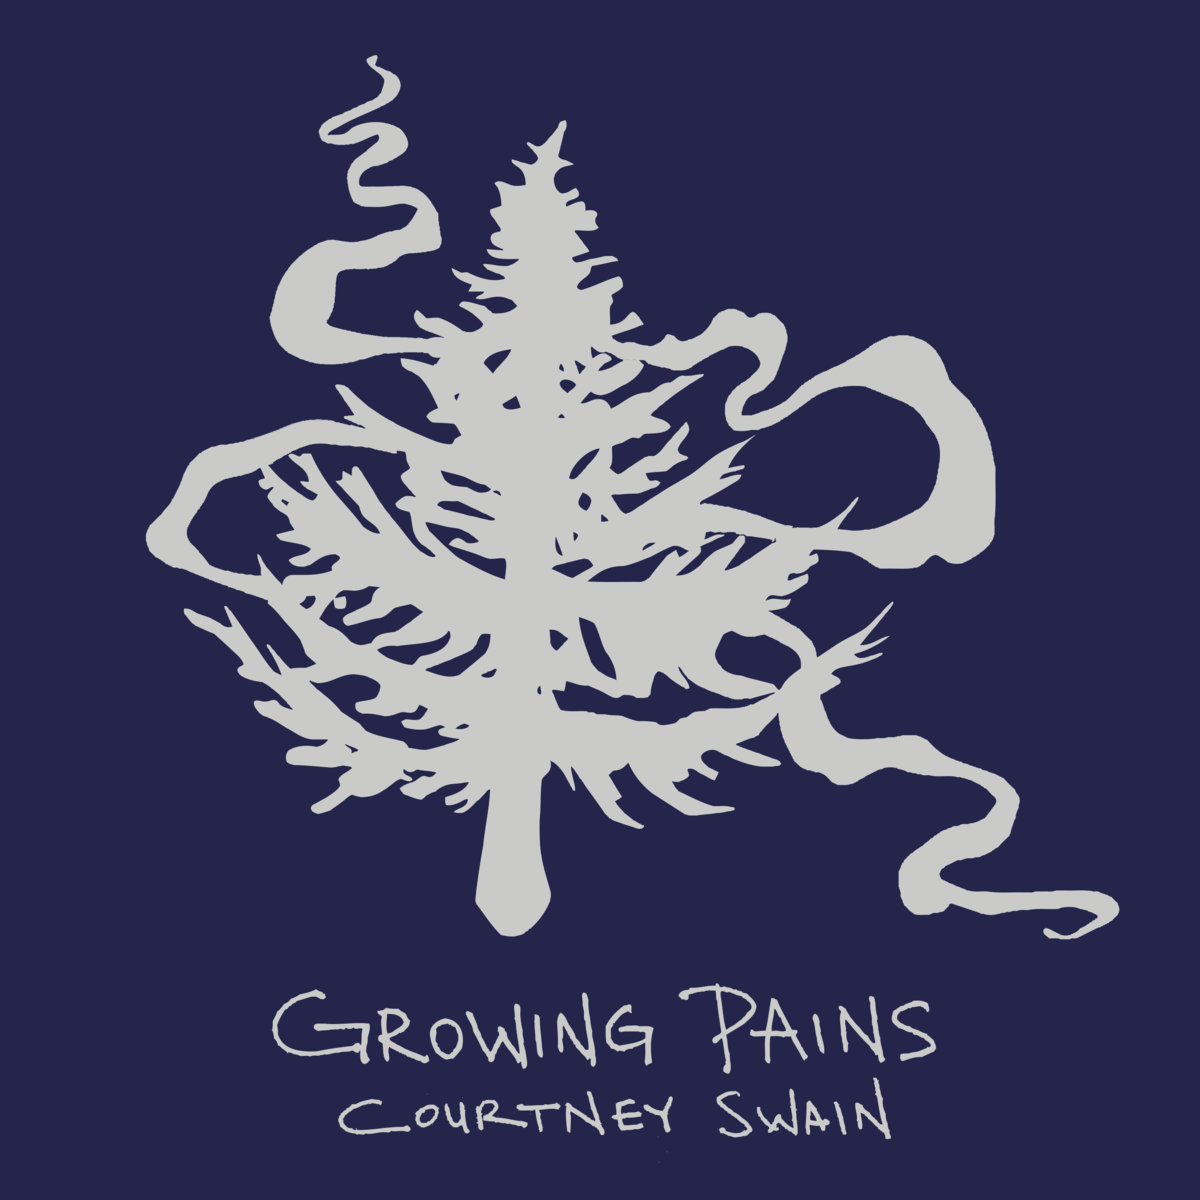 Growing Pains by Courtney Swain